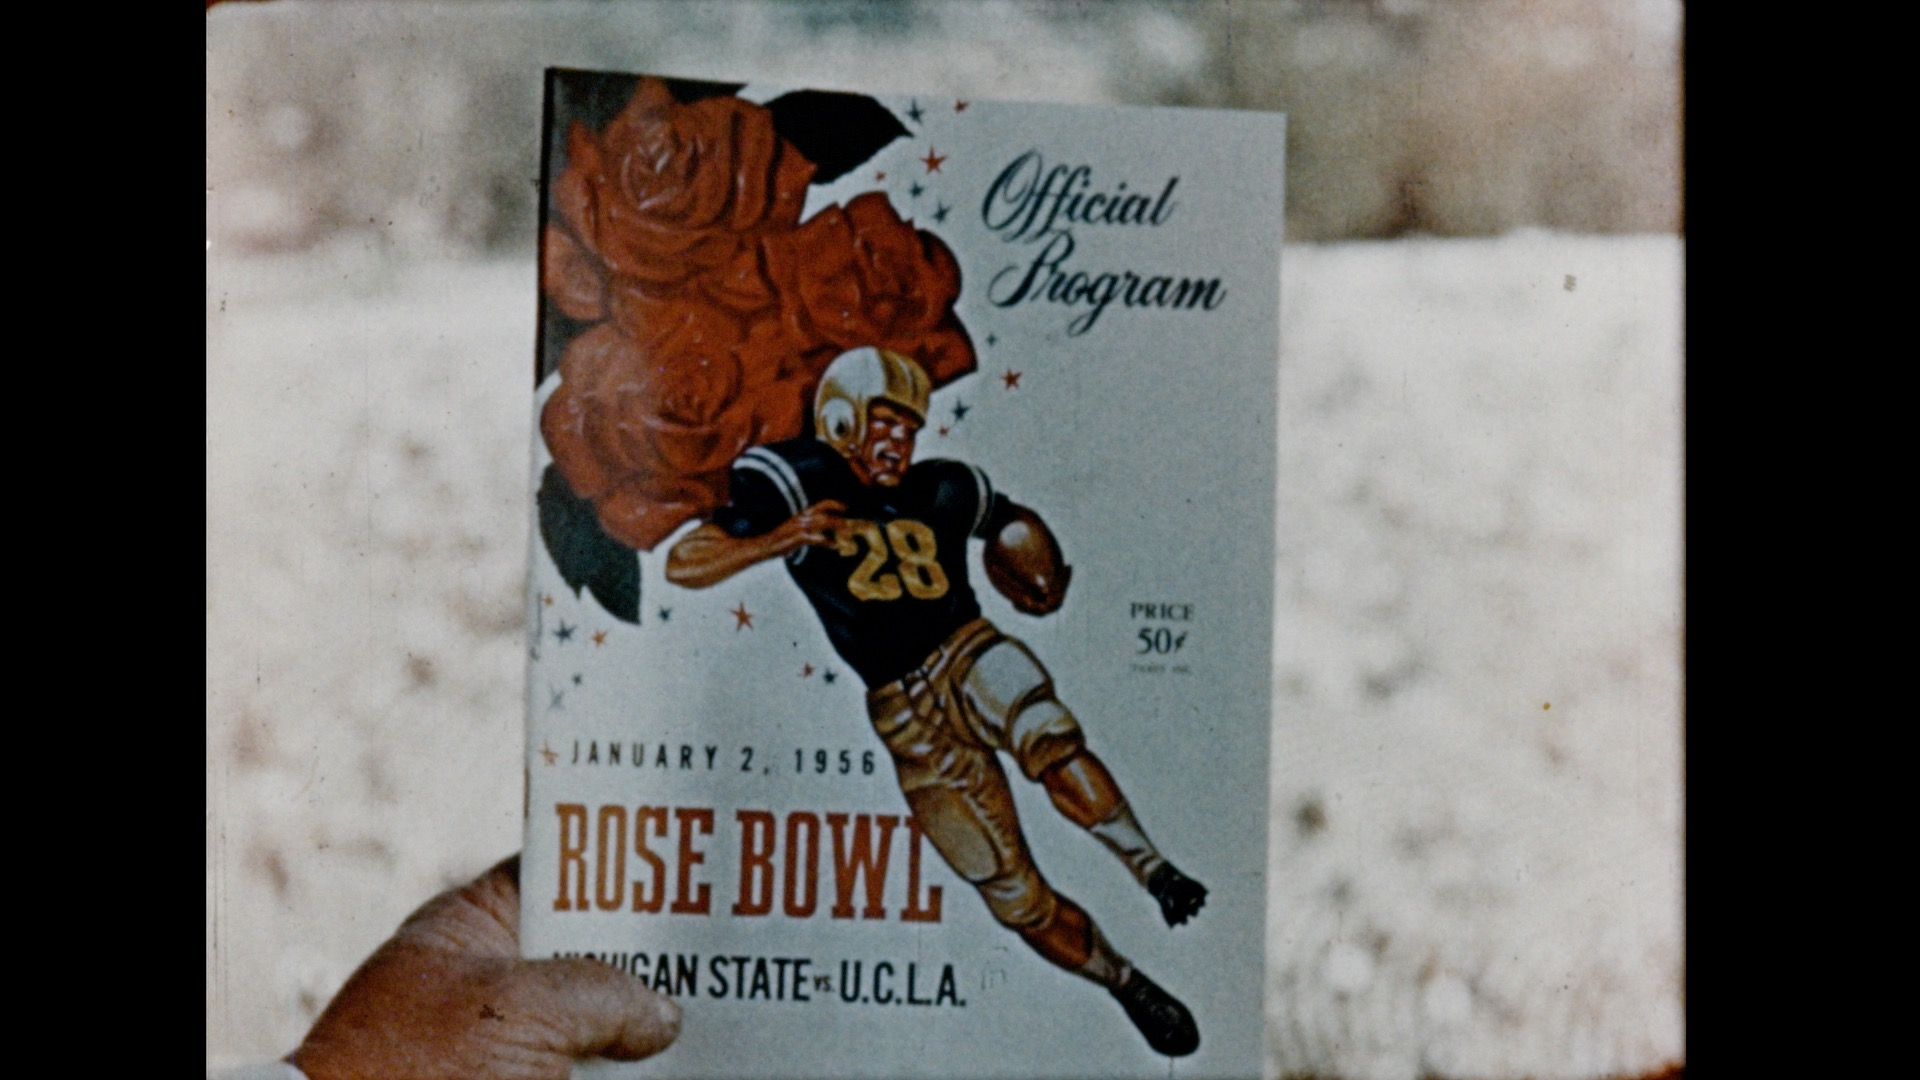 Rose Bowl - Bob Shackleton Narration, 1956